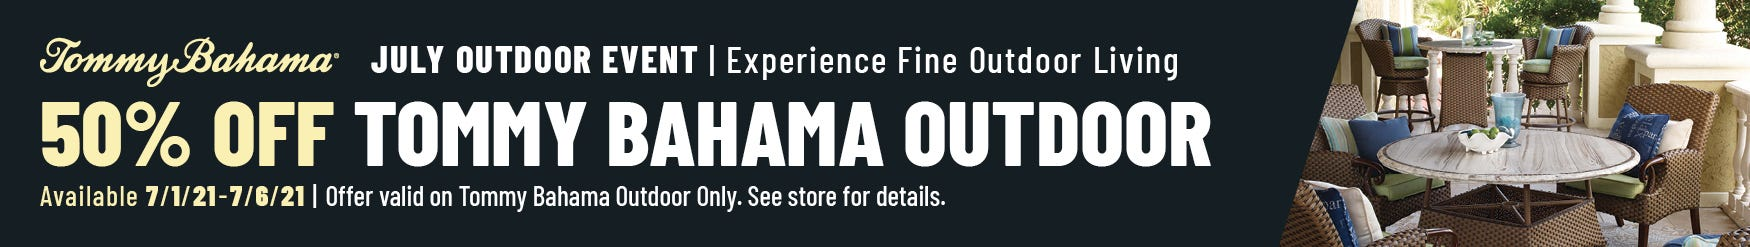 Tommy Bahama July Outdoor Event. Experience Fine Outdoor Living. 50% off Tommy Bahama Outdoor. Available 7/1/21-7/6/21. Offer valid on Tommy Bahama Outdoor Only. See Store for Details.